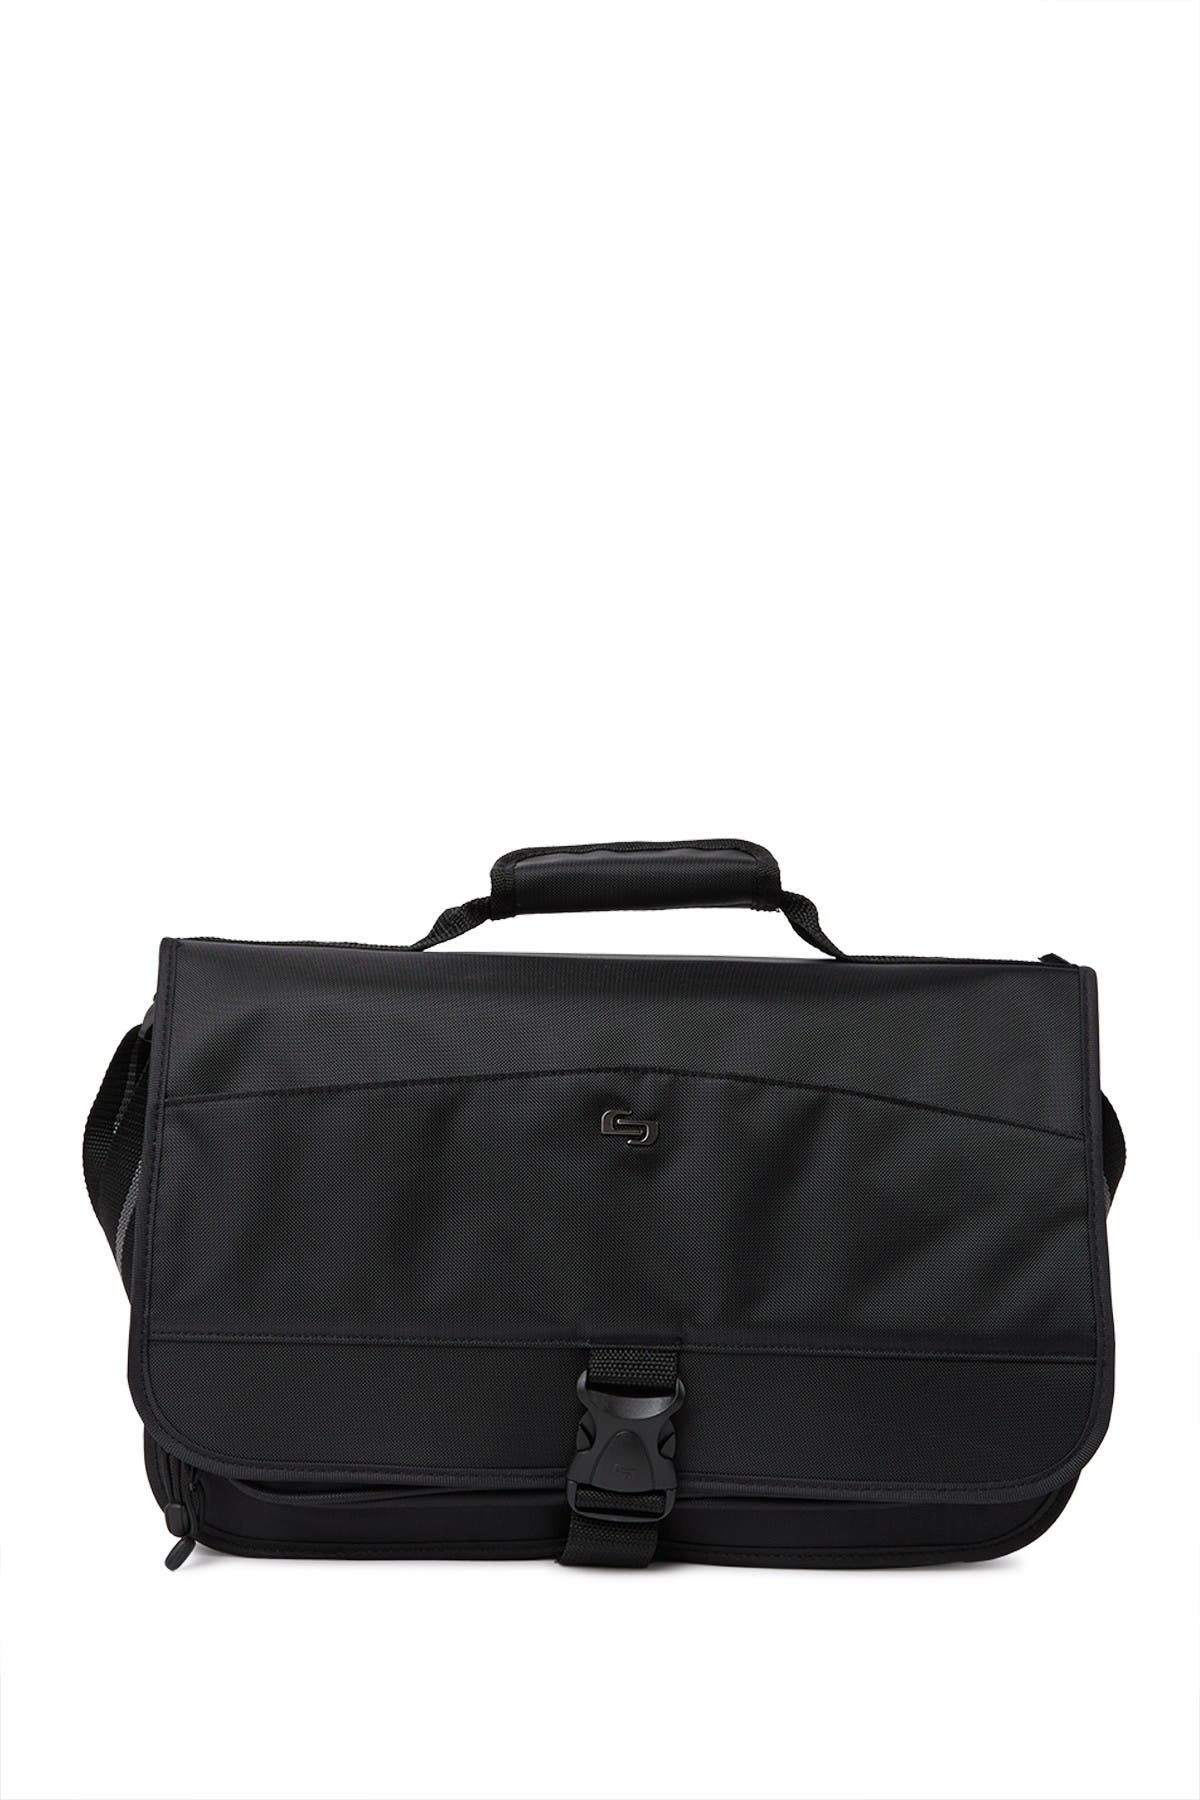 Image of SOLO NEW YORK Conquer Expandable Messenger